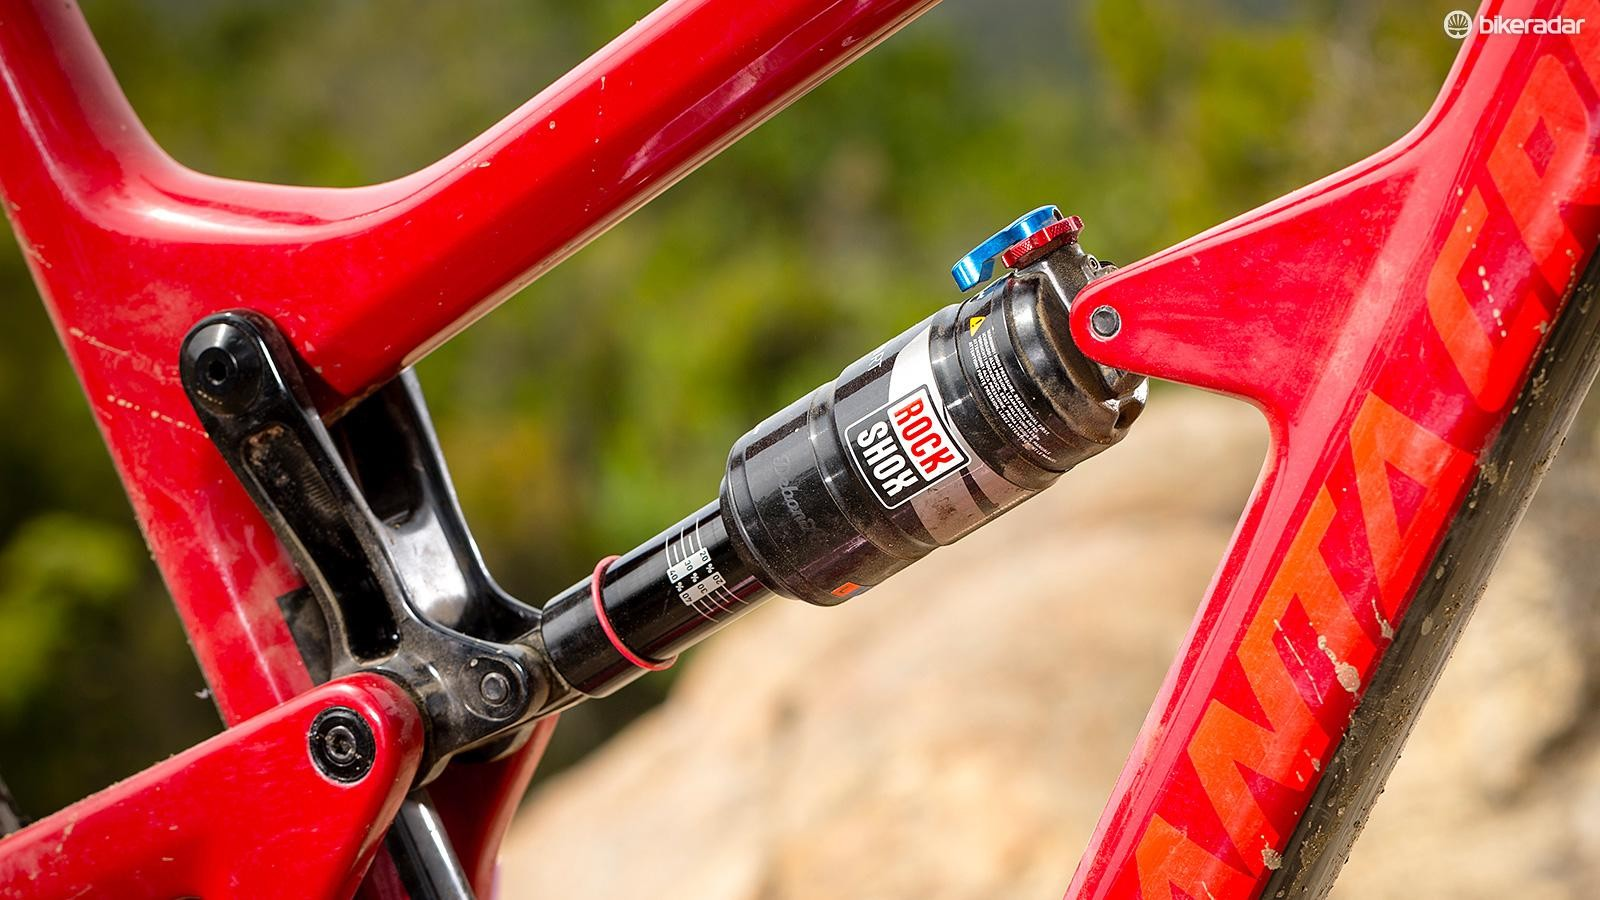 The Virtual Pivot Point suspension rewards pedalling inputs, but isn't the most compliant